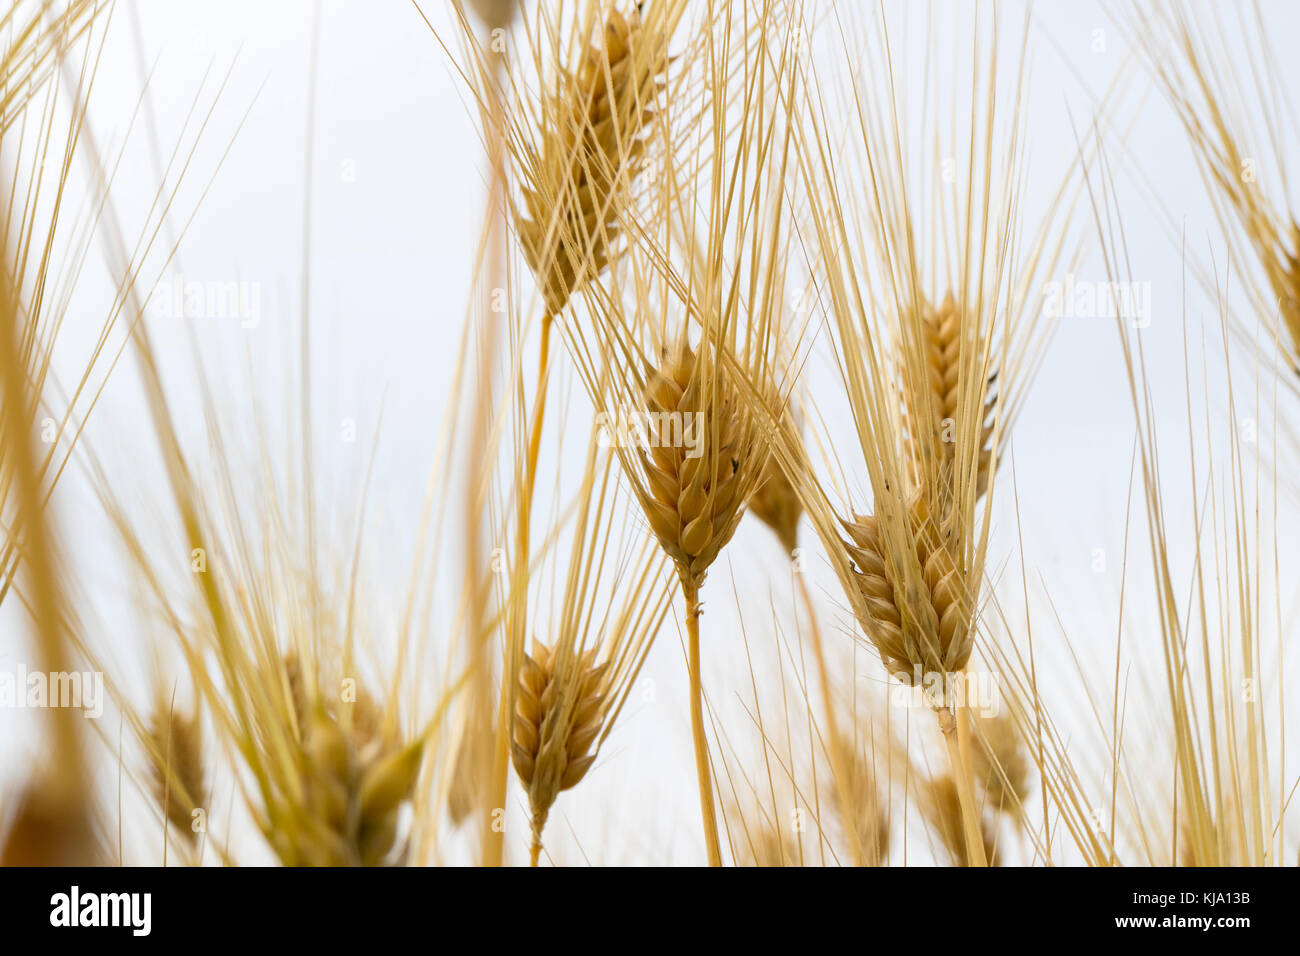 Golden rice ears close up in Hotaka, Japan - Stock Image